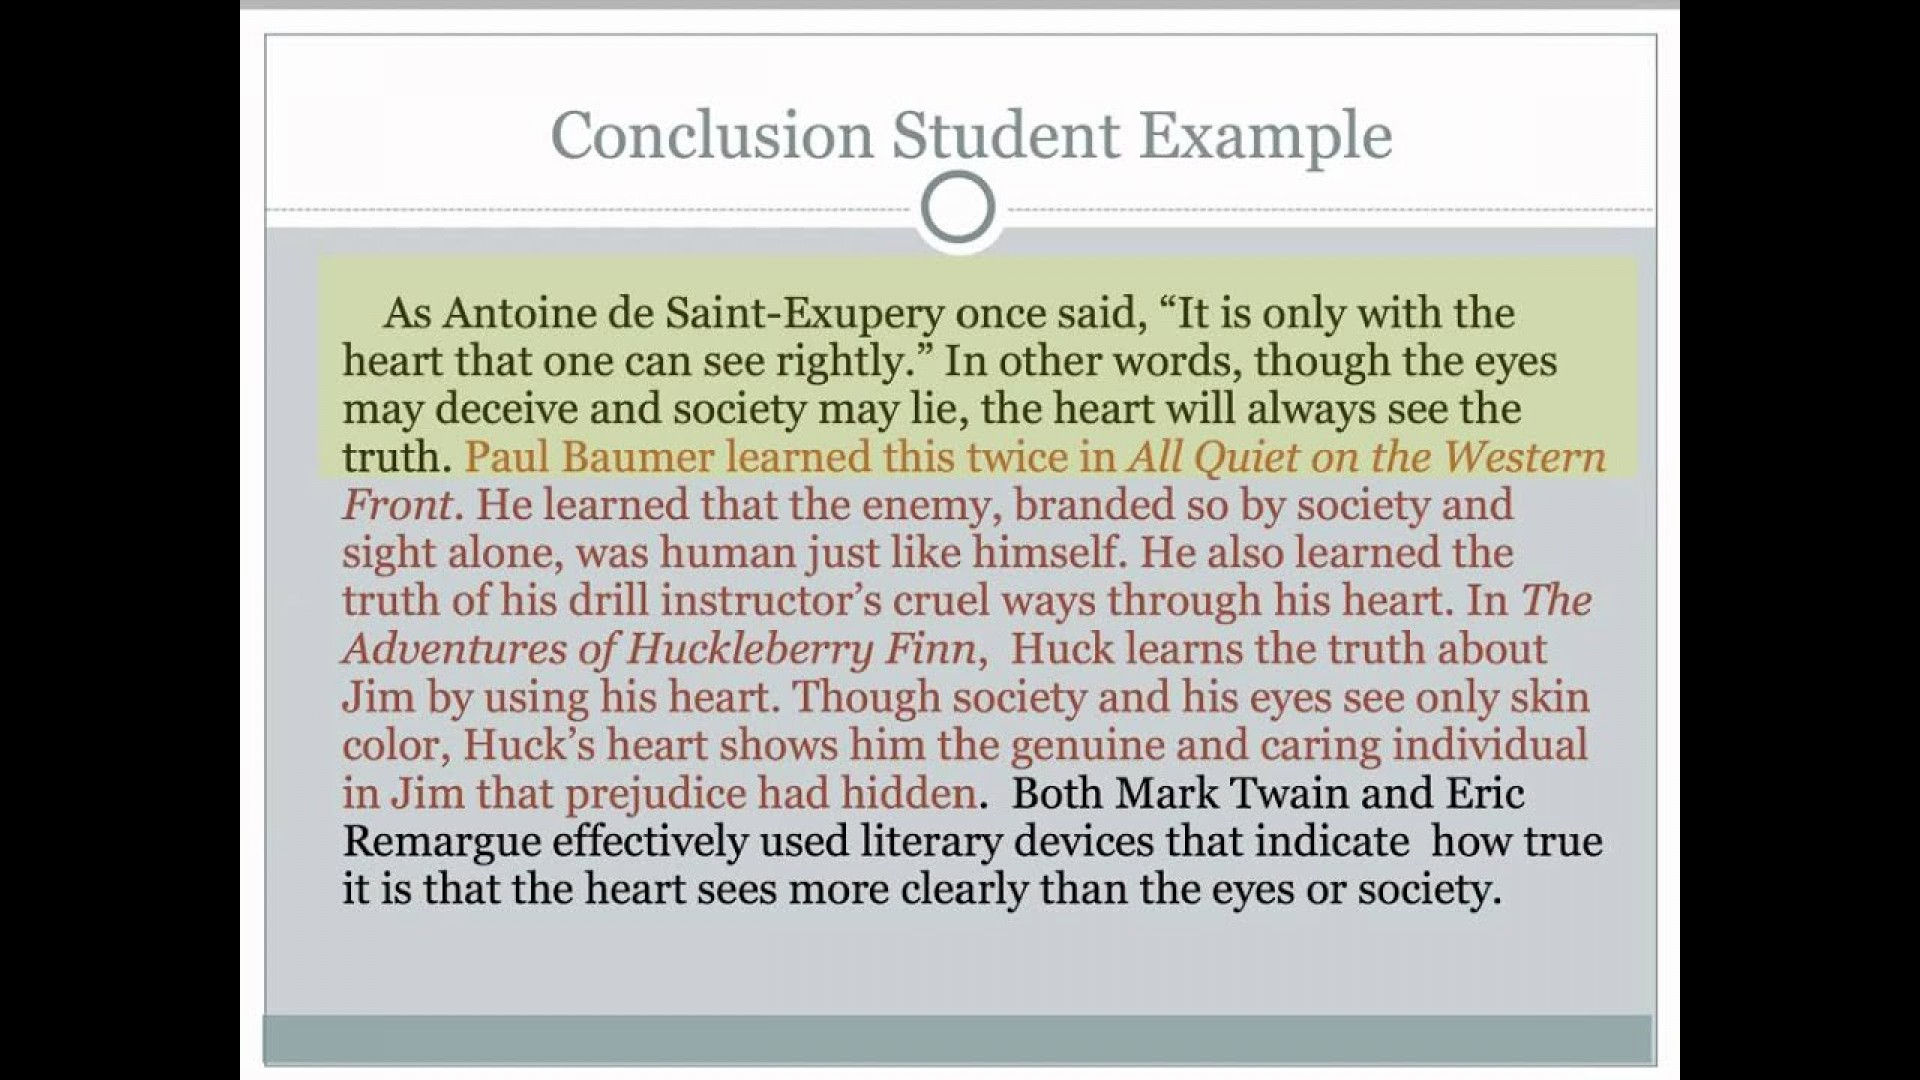 015 Essay Example Conclusion To Persuasive Outstanding Great Conclusions Essays Paragraph The Strongest A 1920